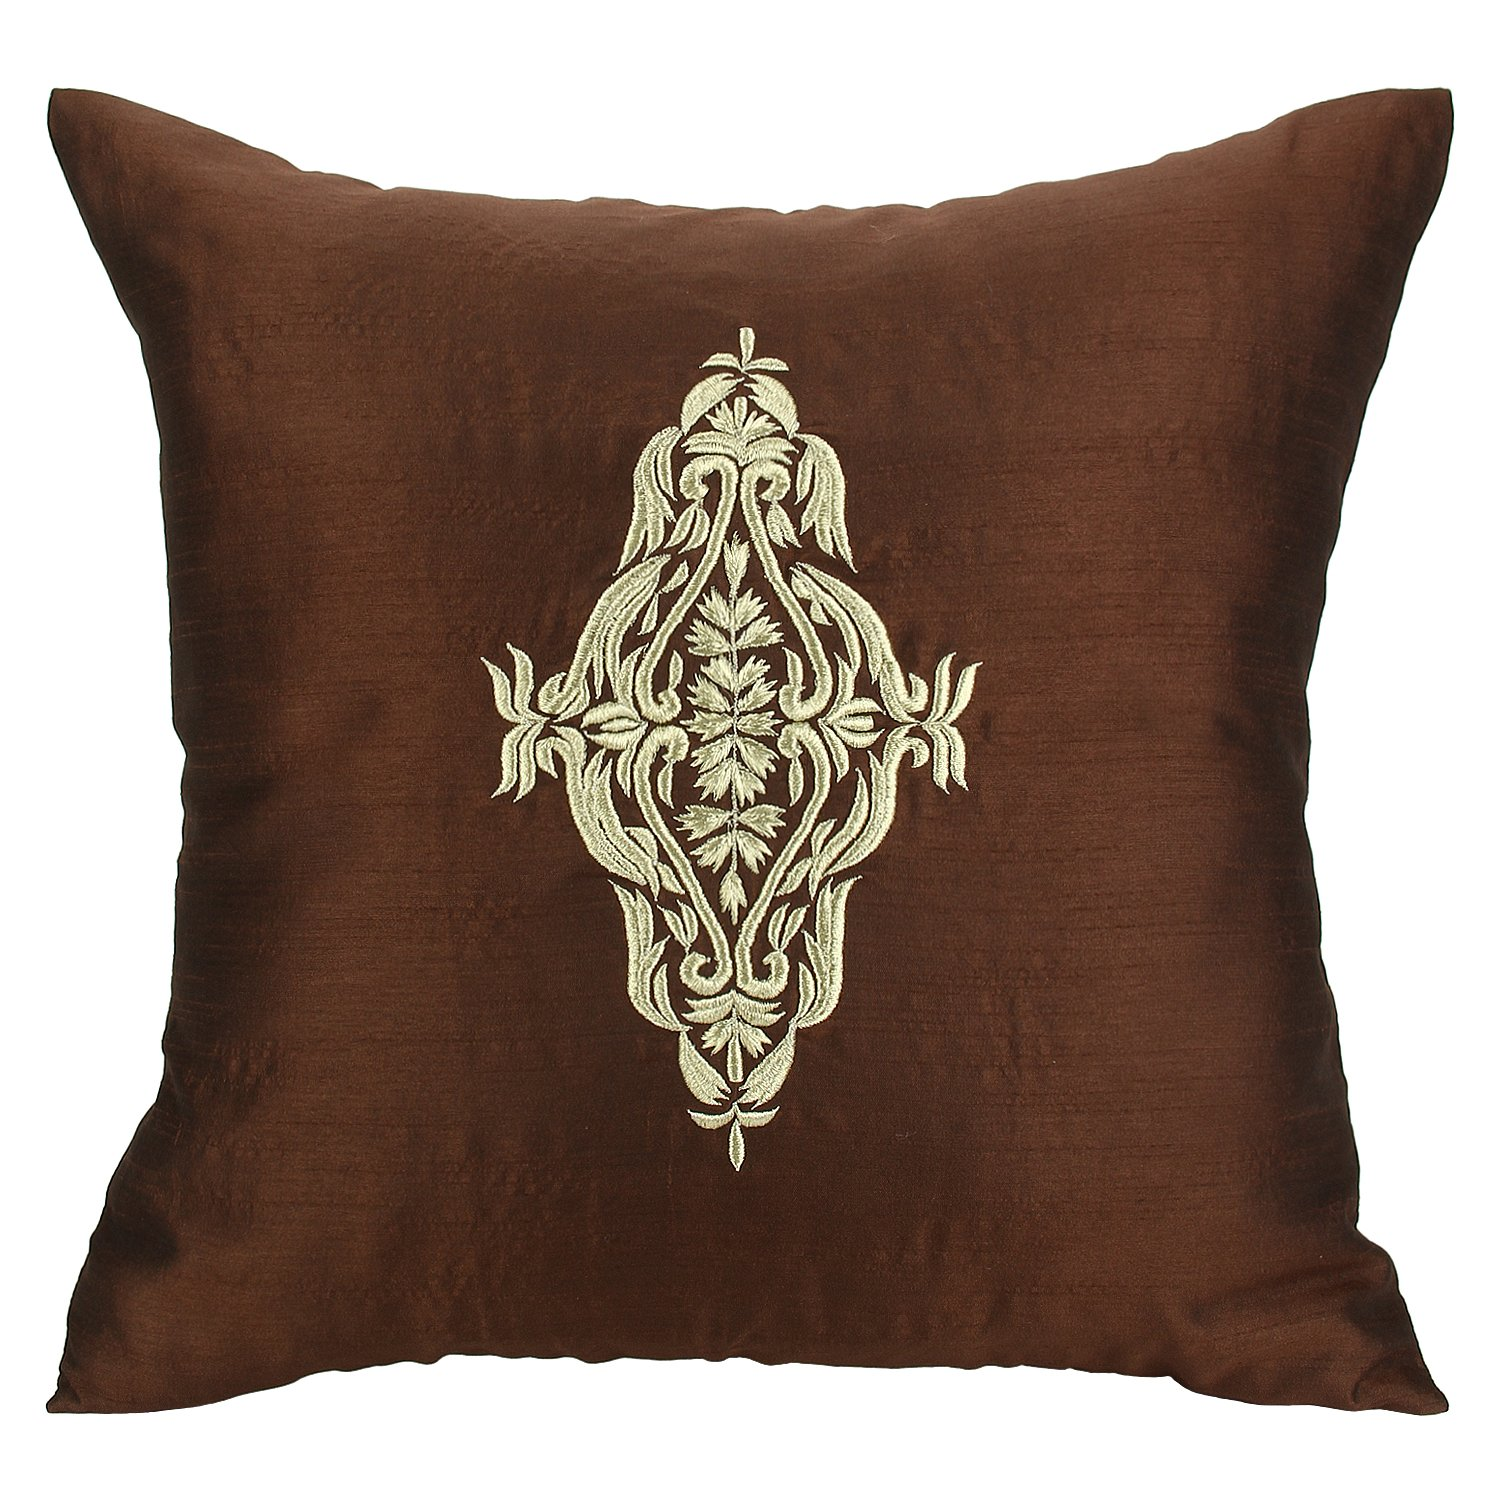 The White Petals Damask Pillow Cover - Chocolate Brown Gold Throw Pillow Cover - Embroidered Accent Pillows For Couch & Bed (Chocolate Brown, 16x16 inches)